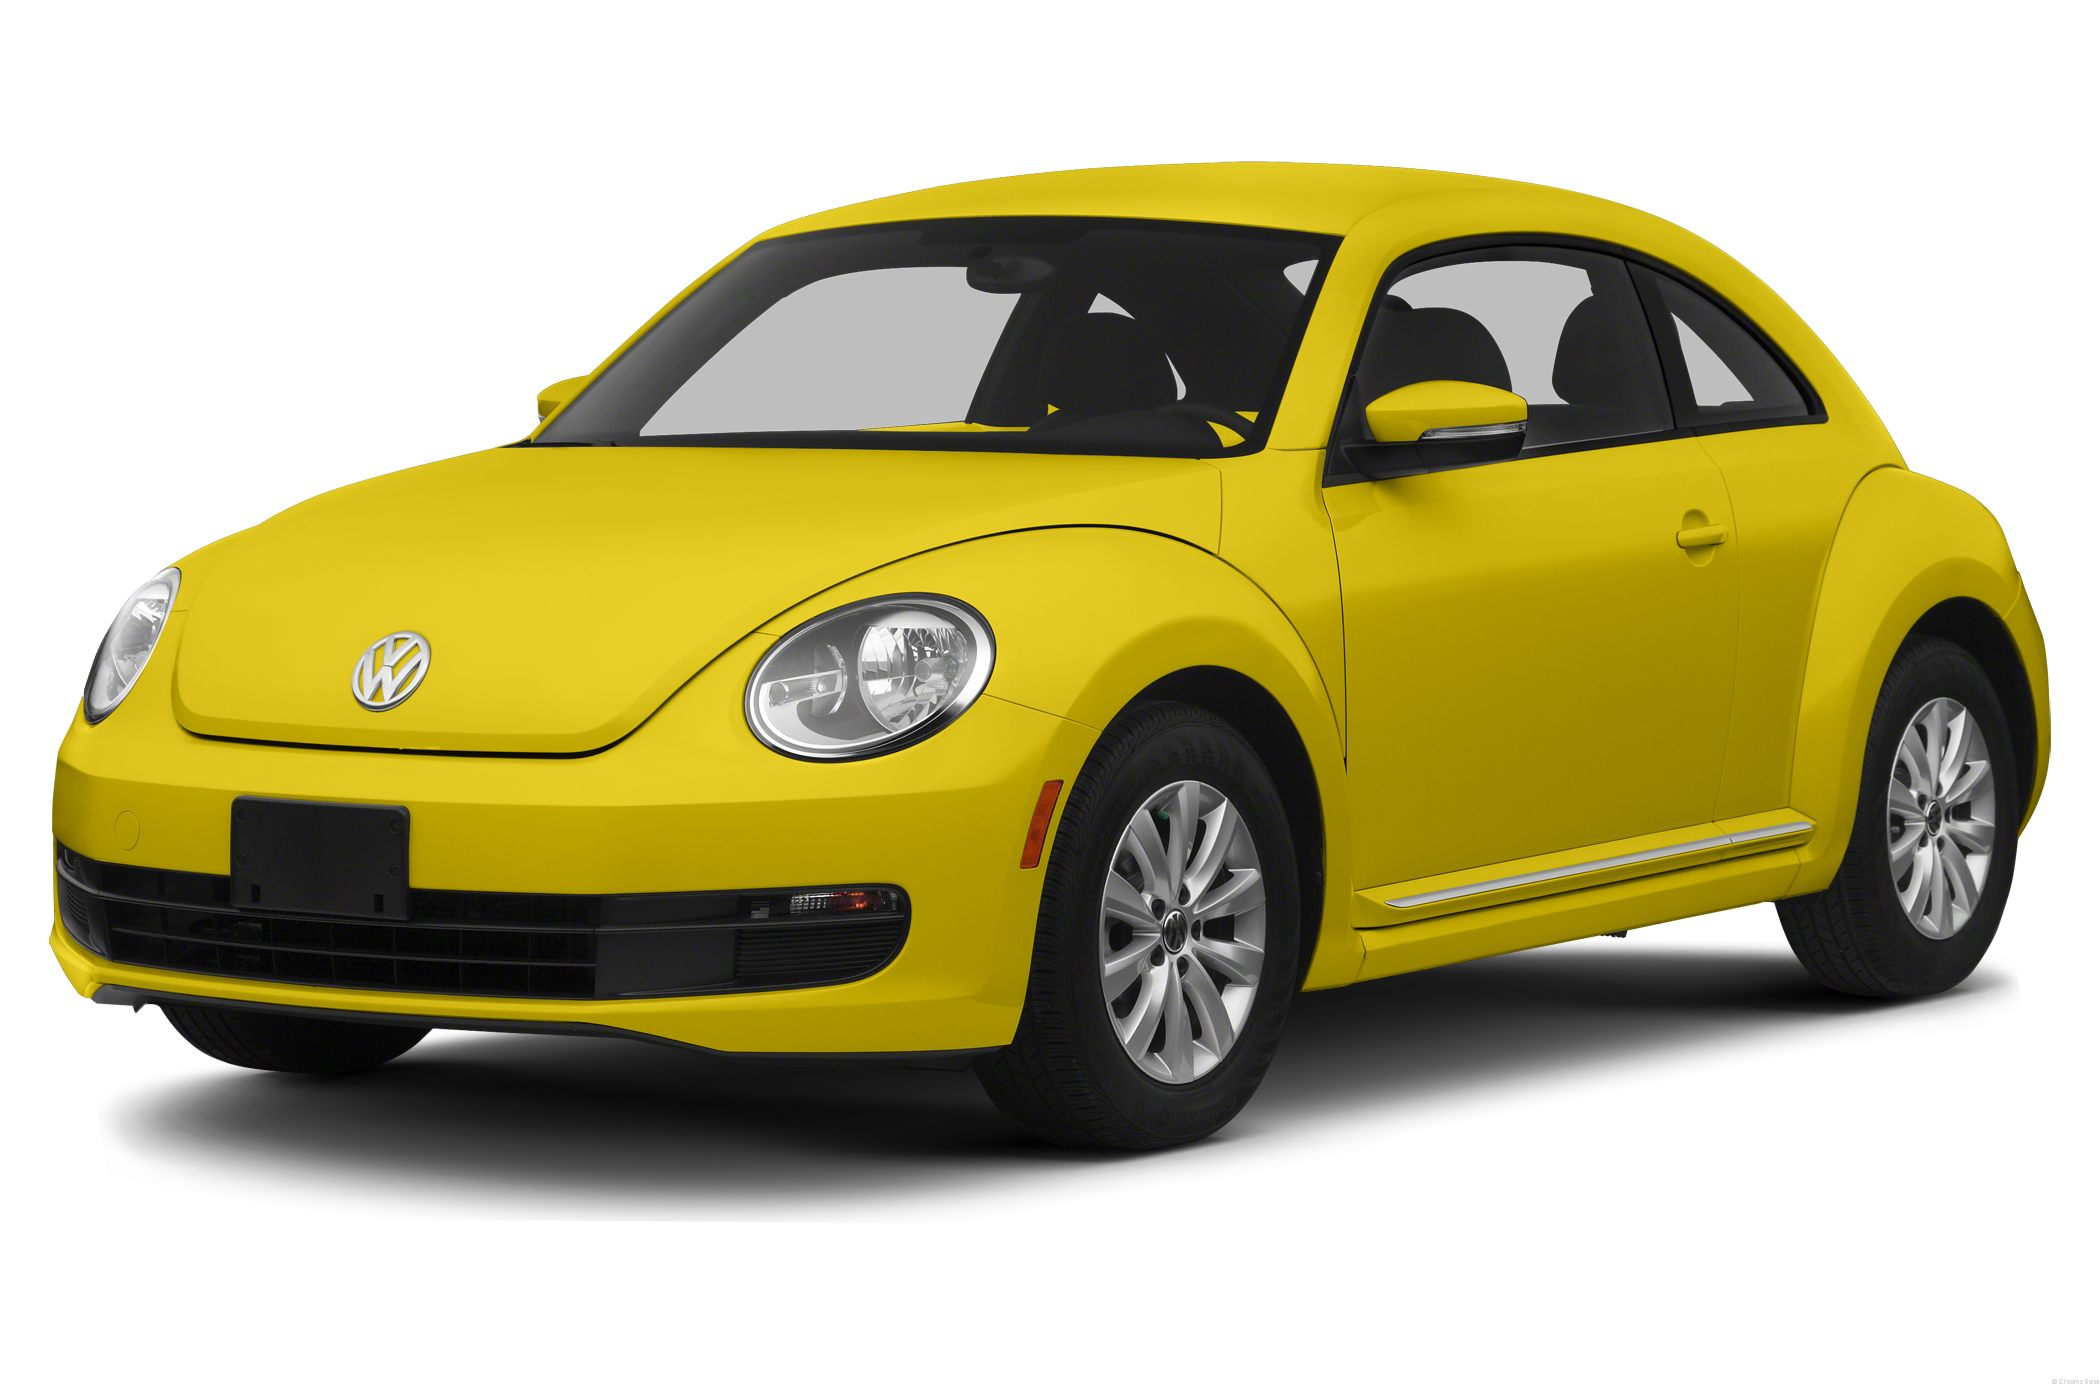 volkswagen new beetle (9c) 2013 wallpaper